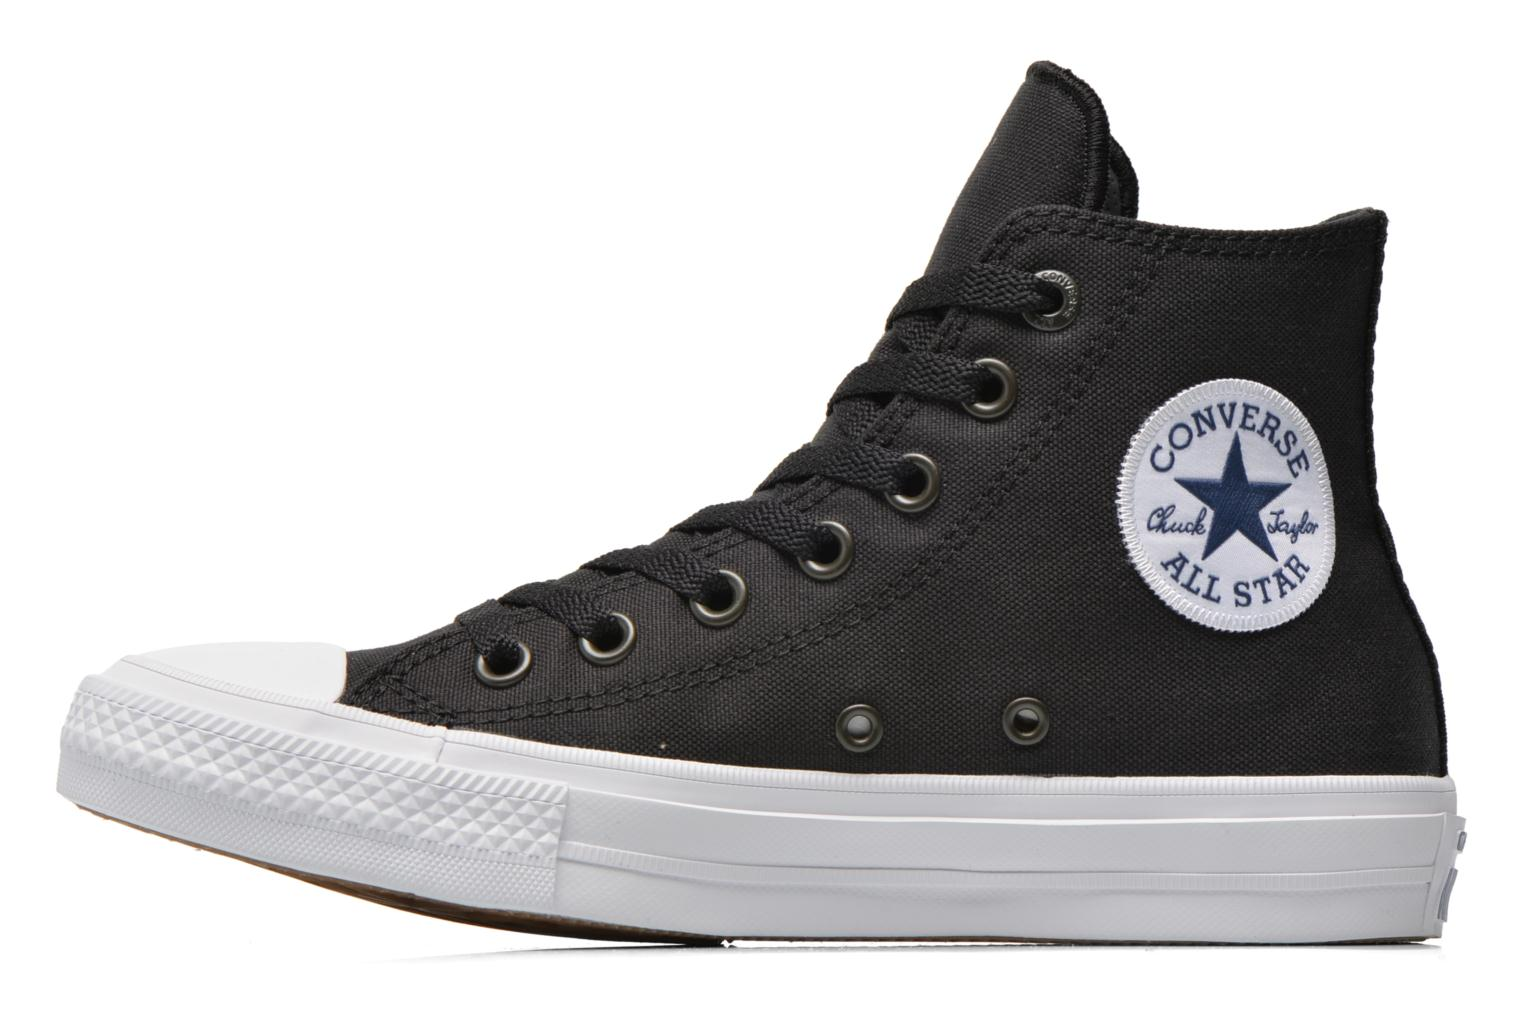 Chuck Taylor All Star II Hi W Black-White-Navy